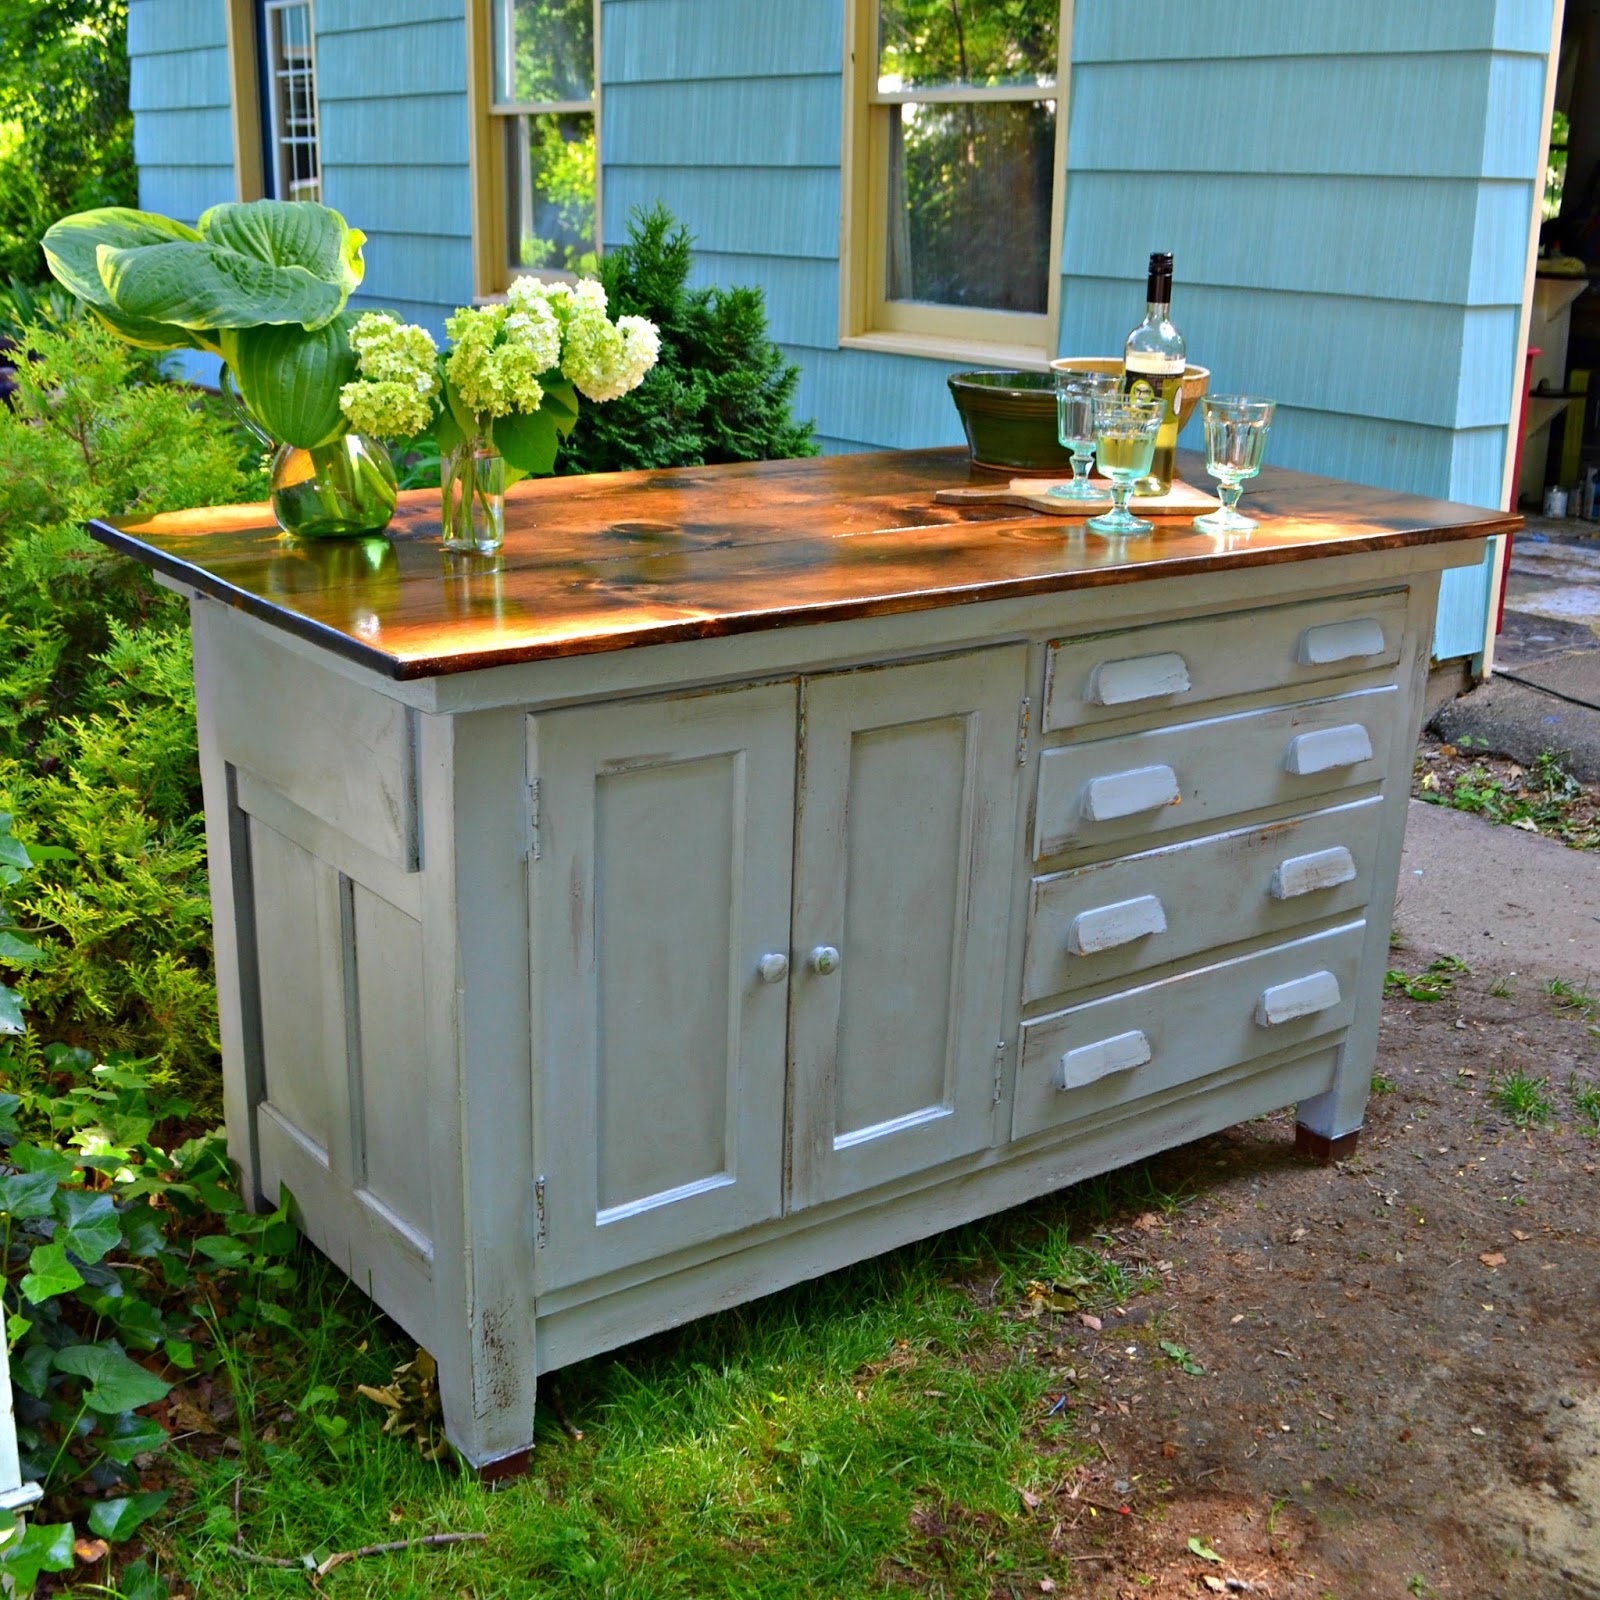 Antique Kitchen Work Tables Heir And Space An Antique Work Bench Turned Kitchen Island